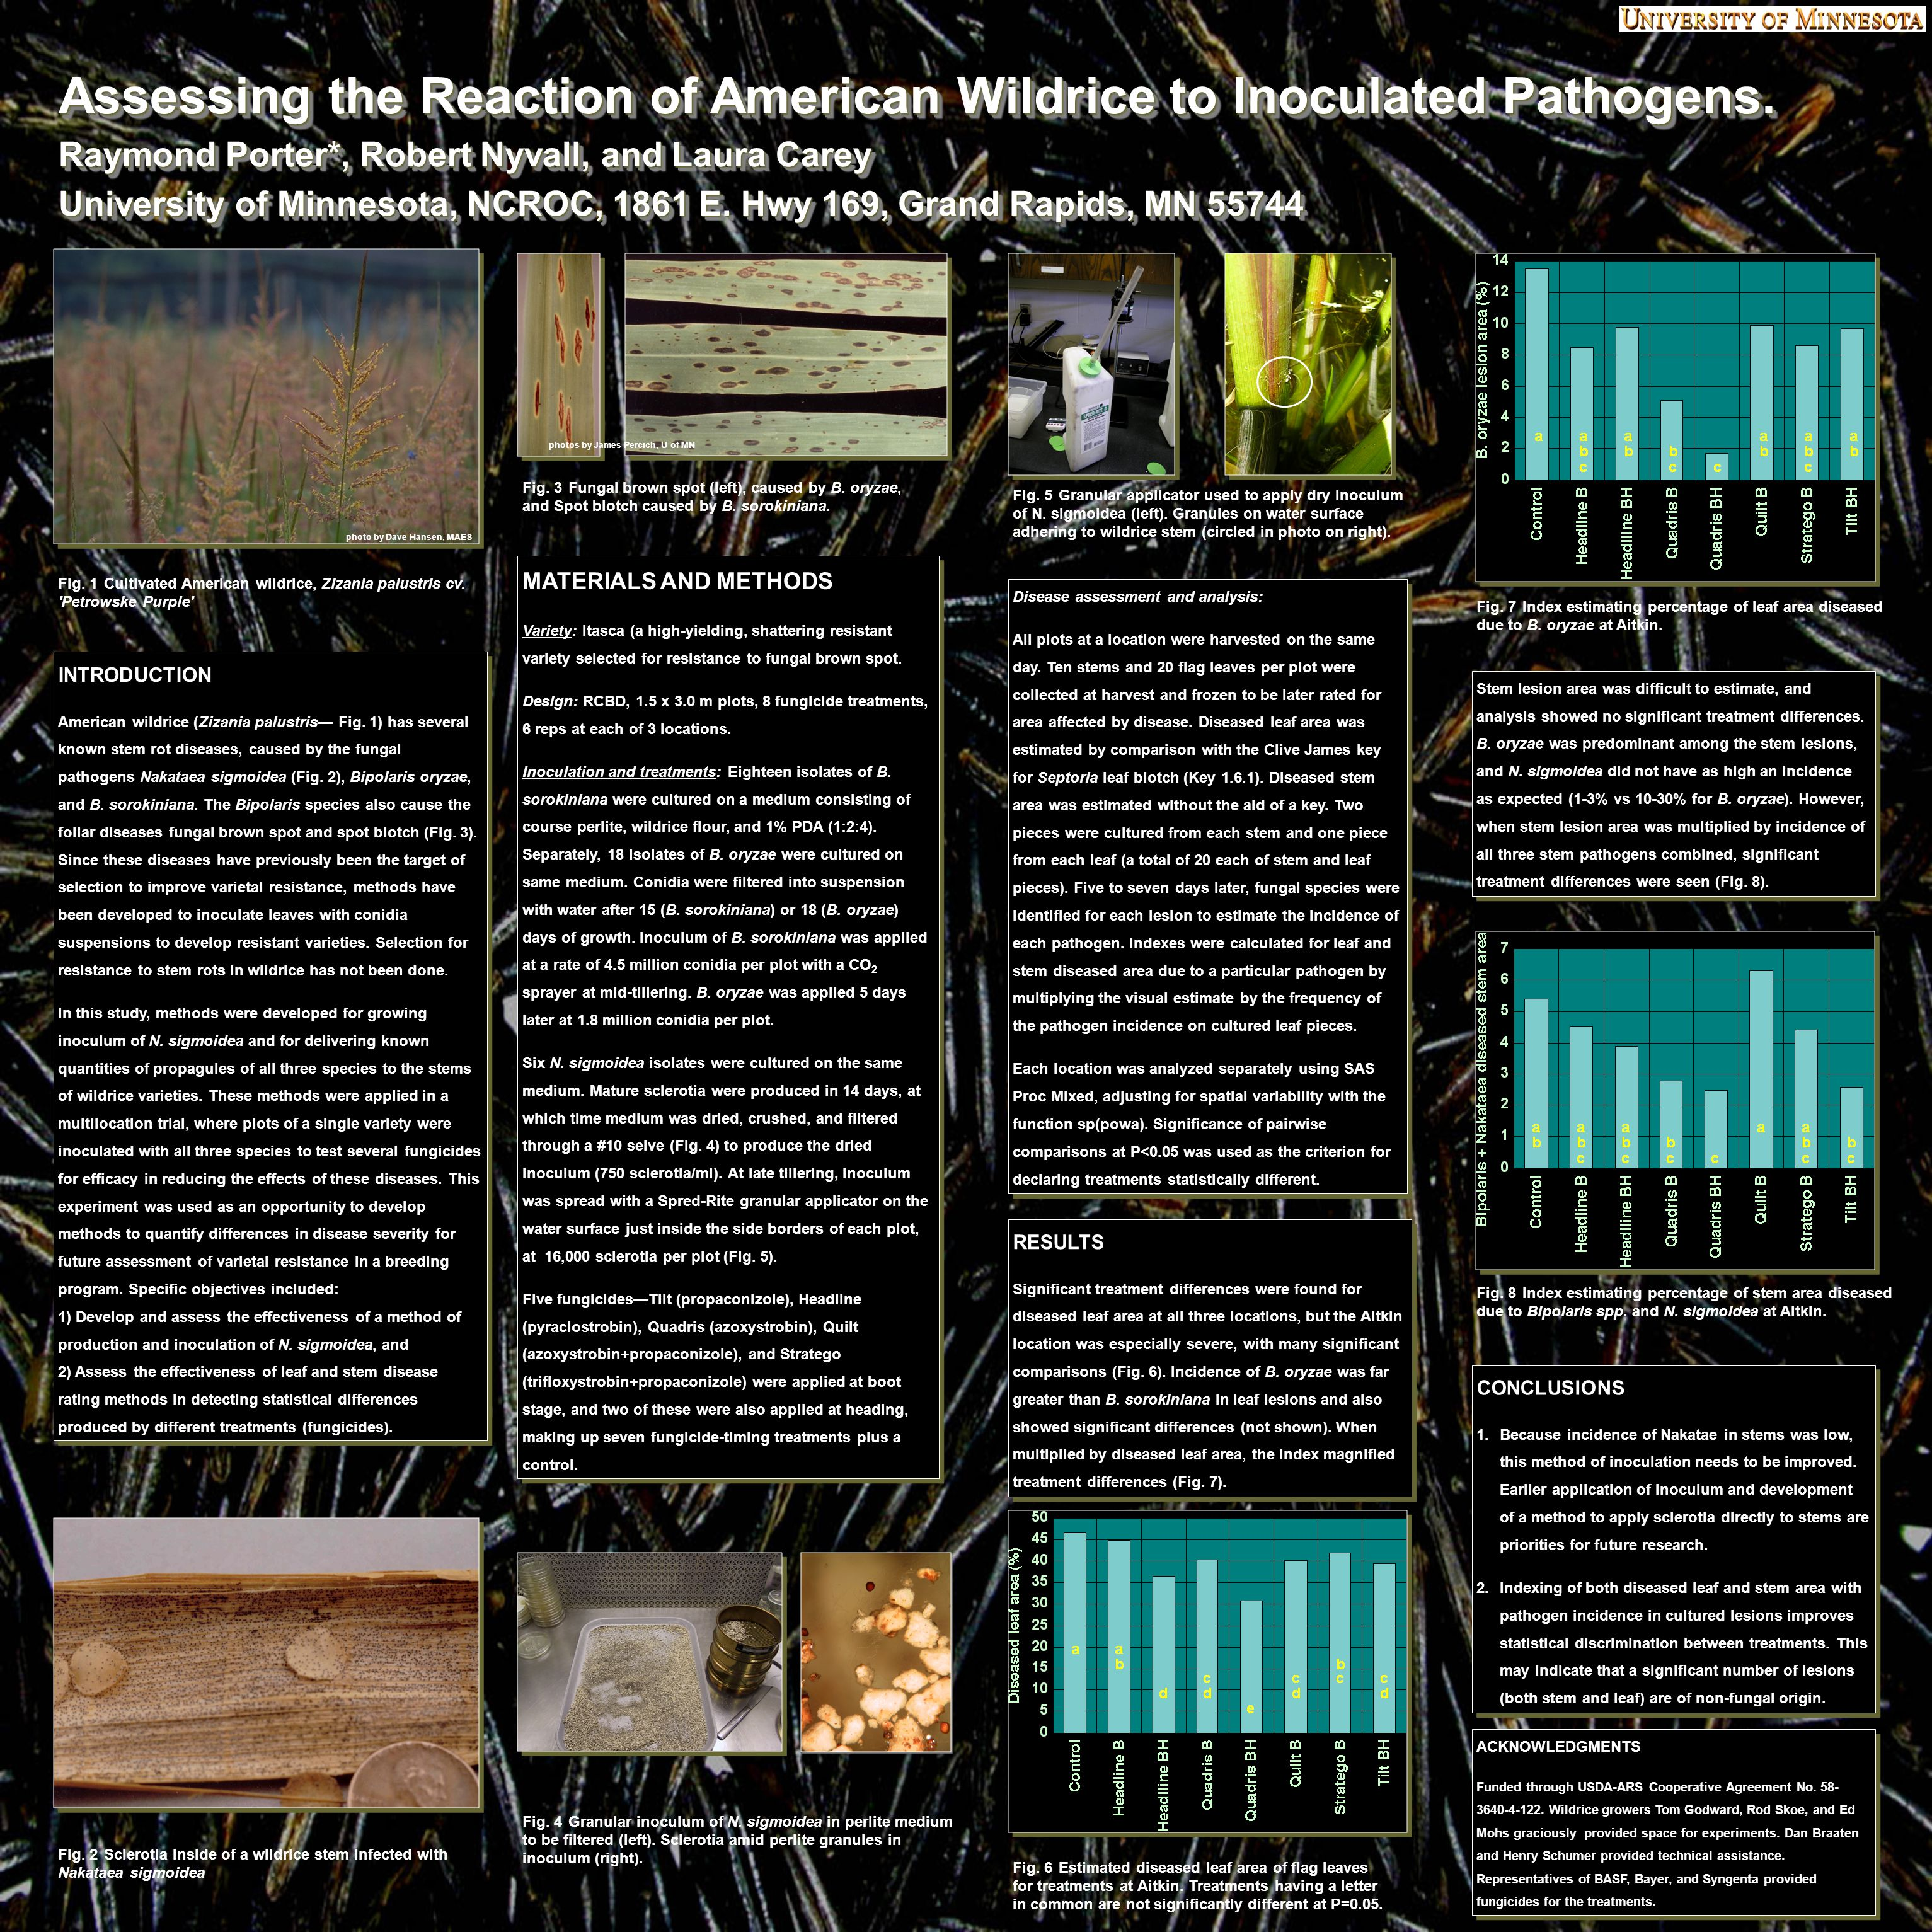 Assessing the Reaction of American Wildrice to Inoculated Pathogens.